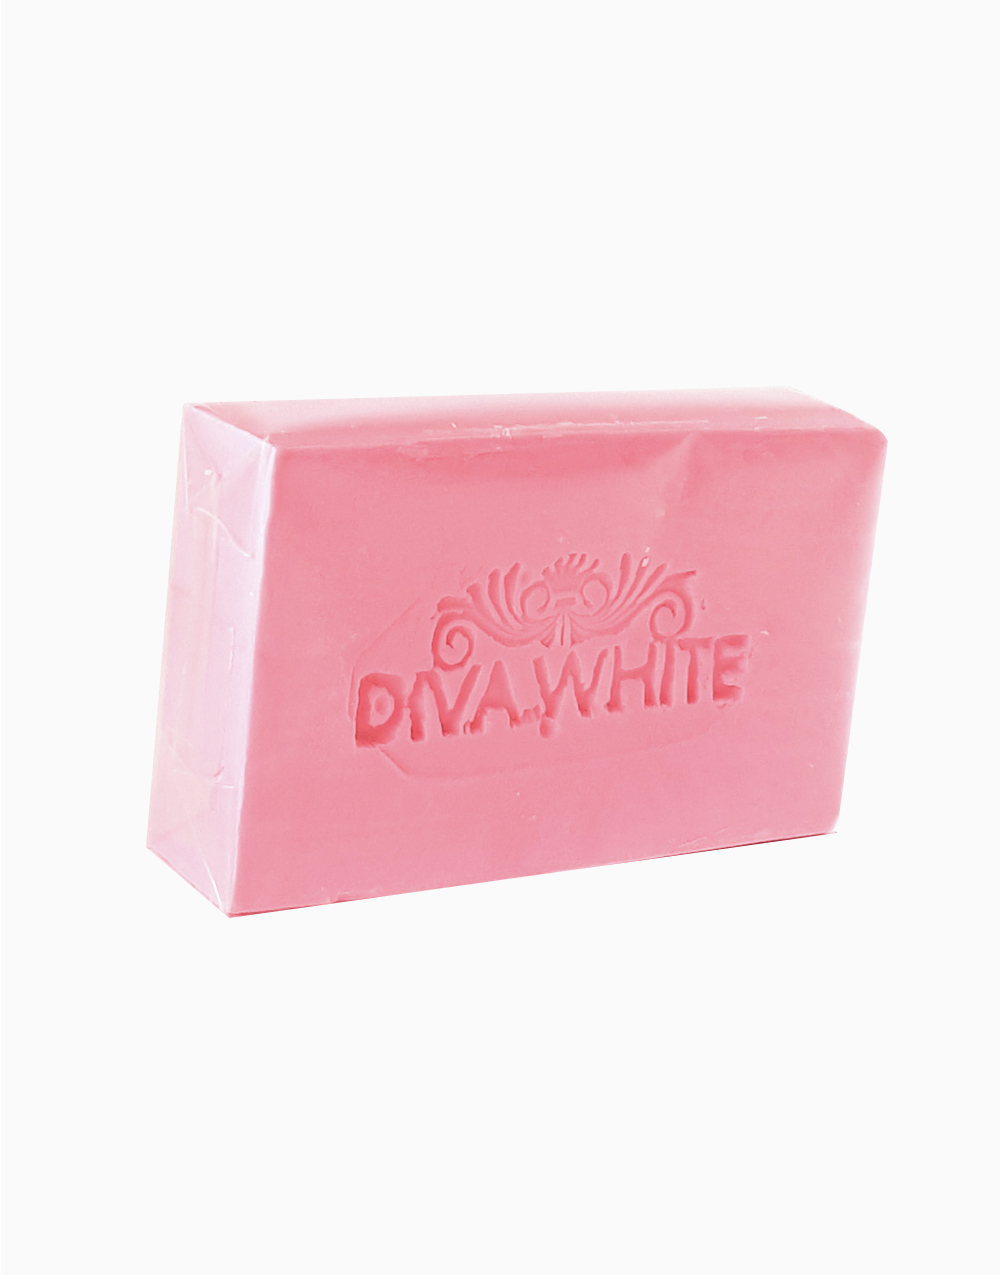 Extreme Whitening and Exfoliating Soap by Diva White